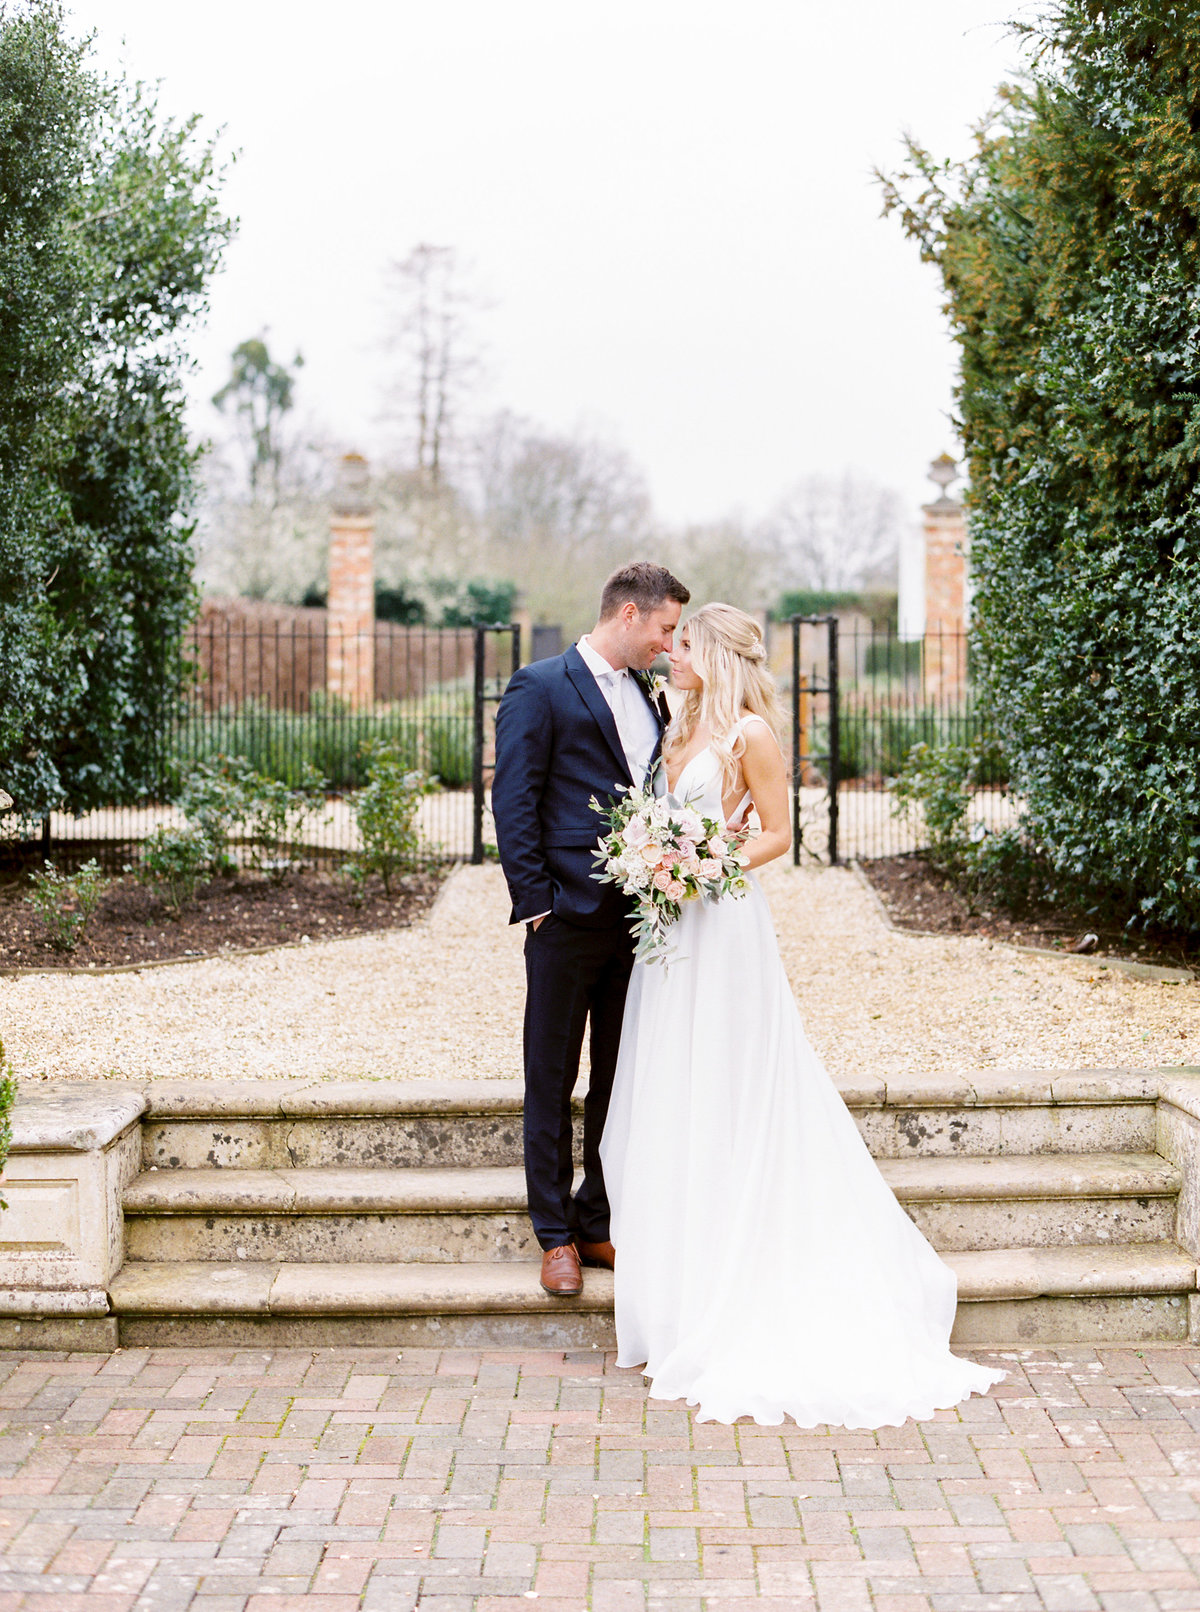 Luxury Hampshire Wedding Planner | ride | UK Wedding Planner | Rachel Dalton Weddings